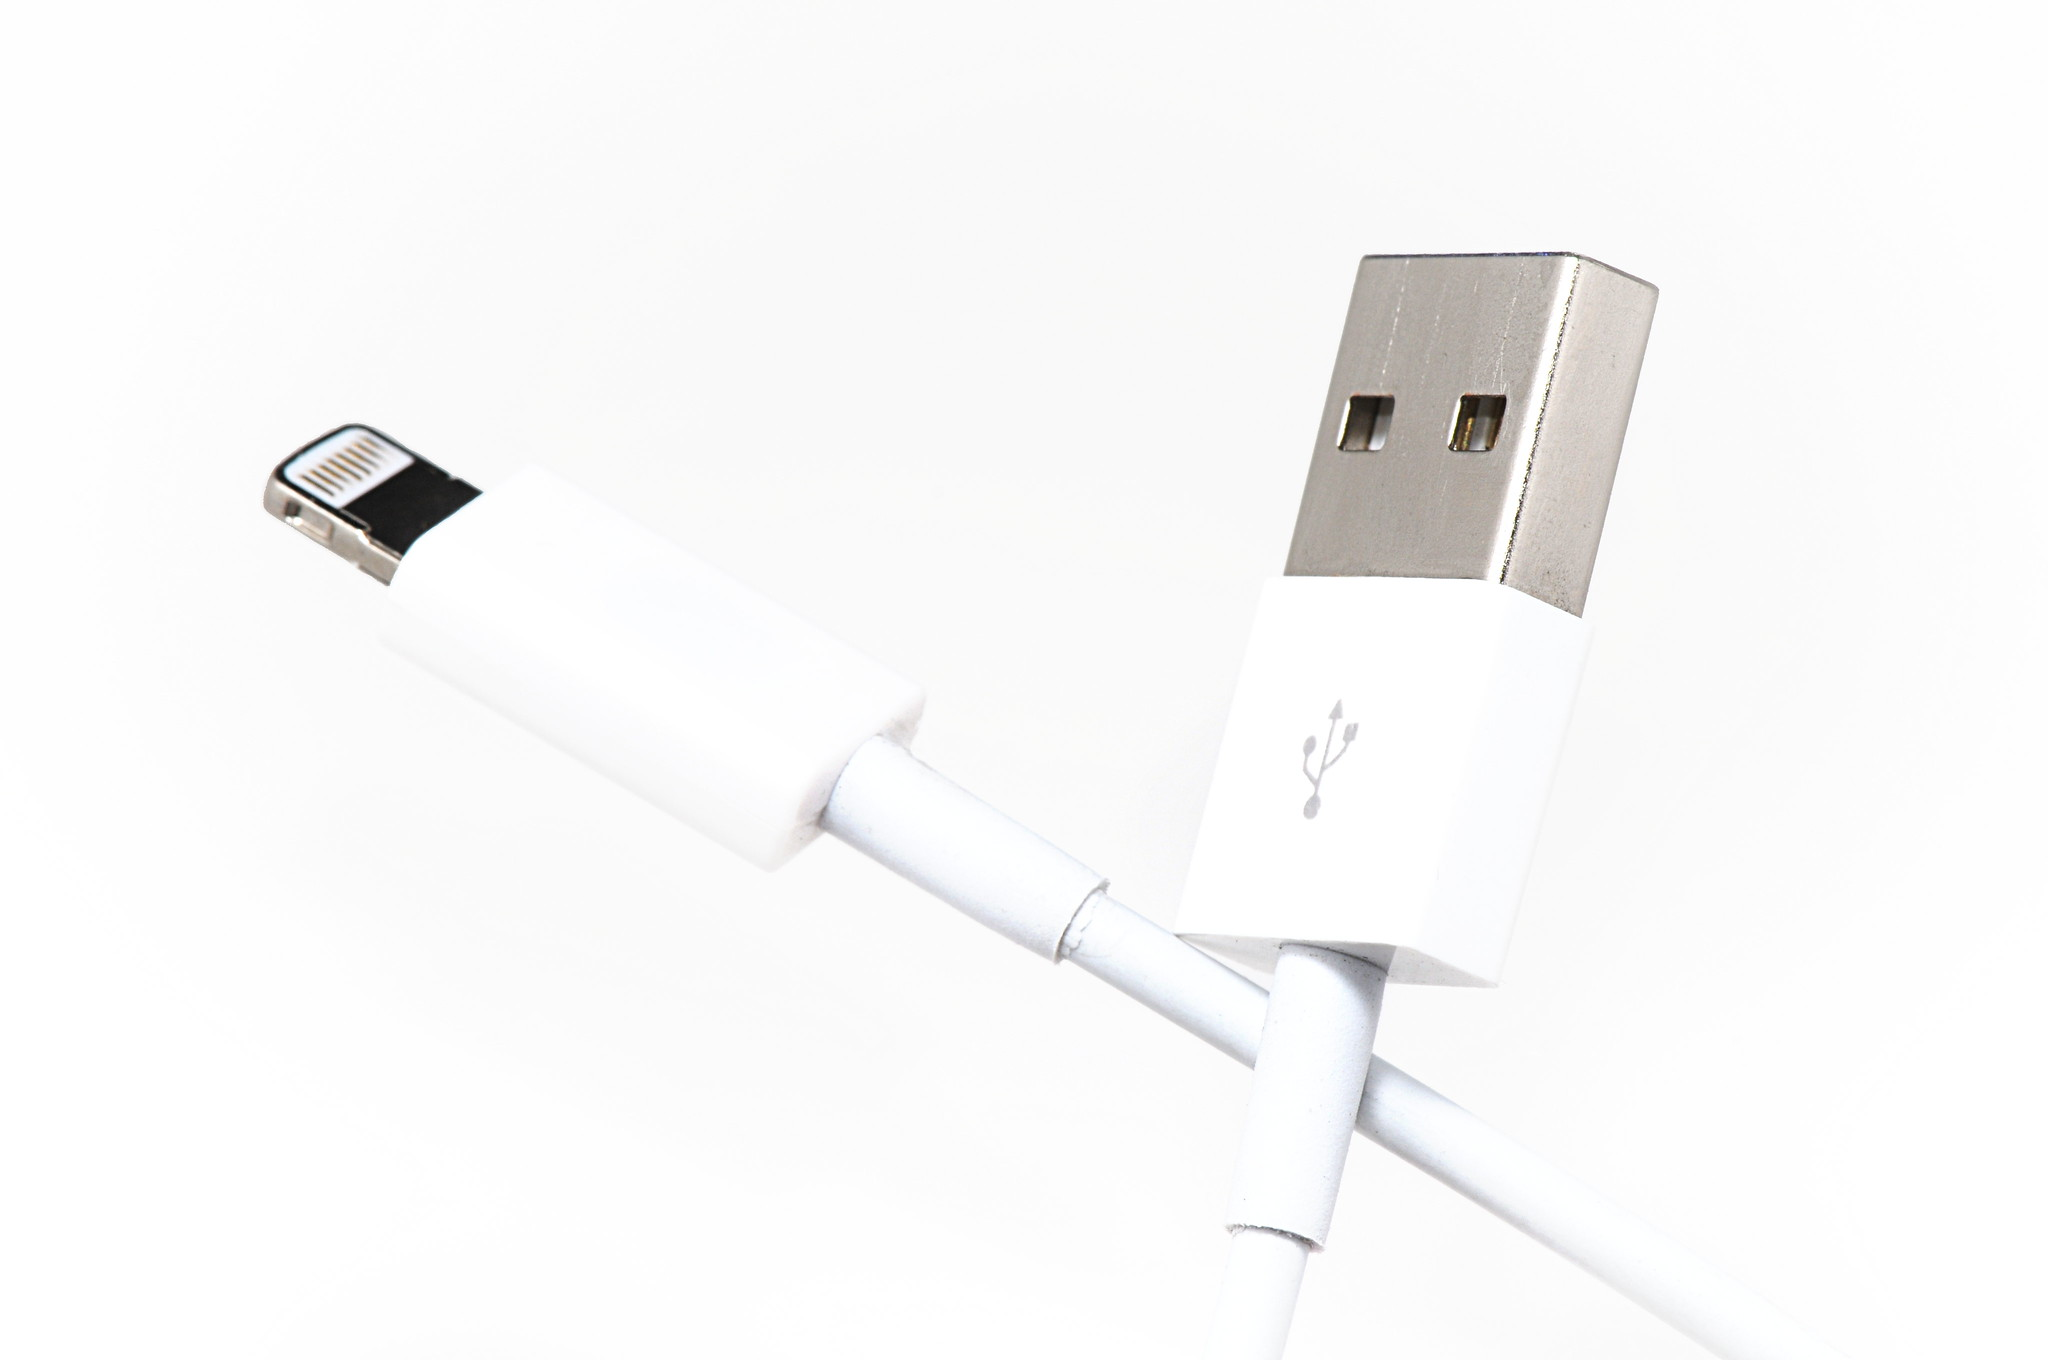 European Union wants Apple's Lightning port gone